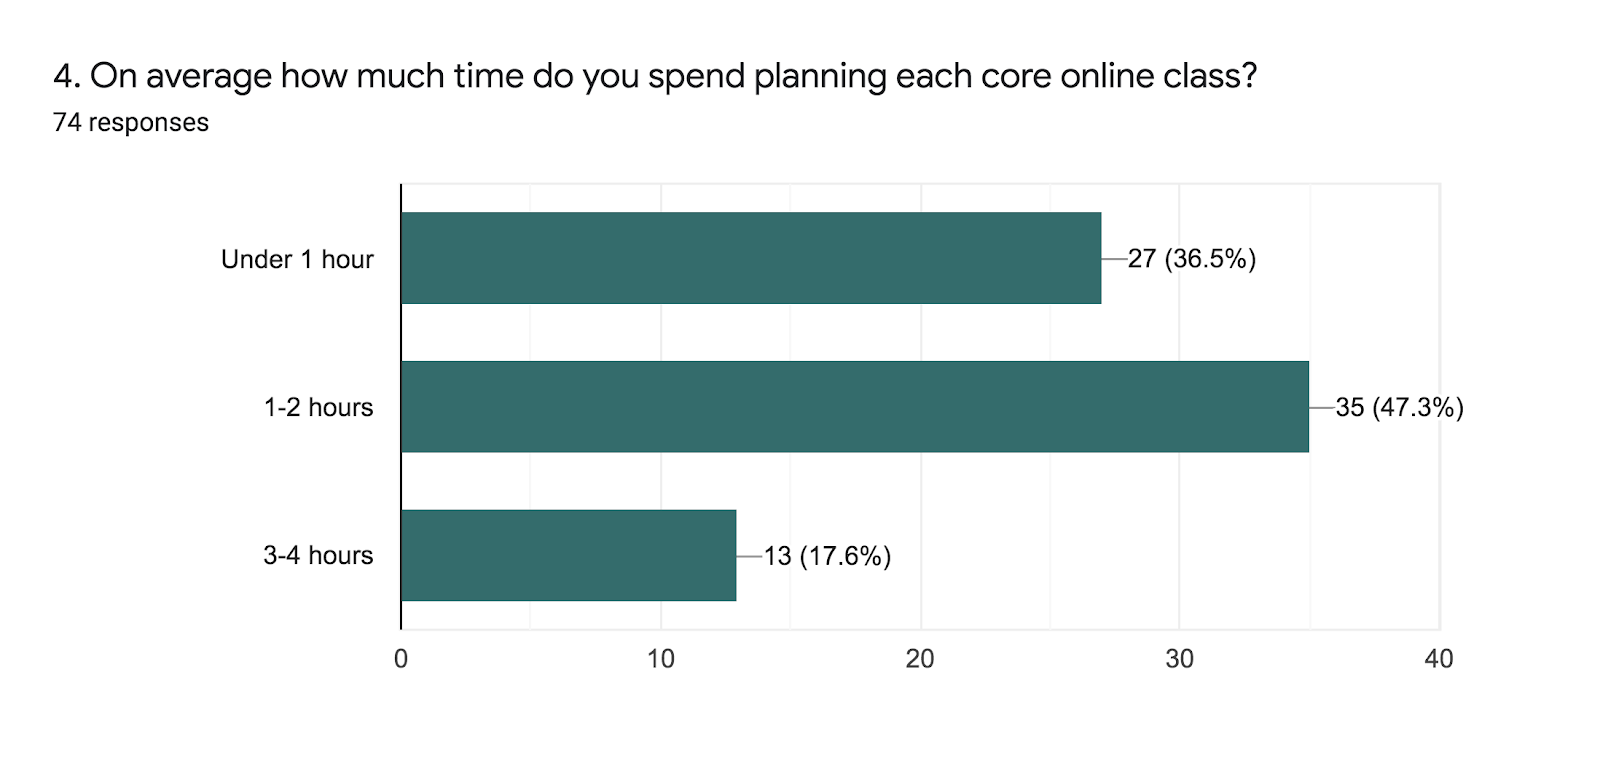 Forms response chart. Question title: 4. On average how much time do you spend planning each core online class?. Number of responses: 74 responses.